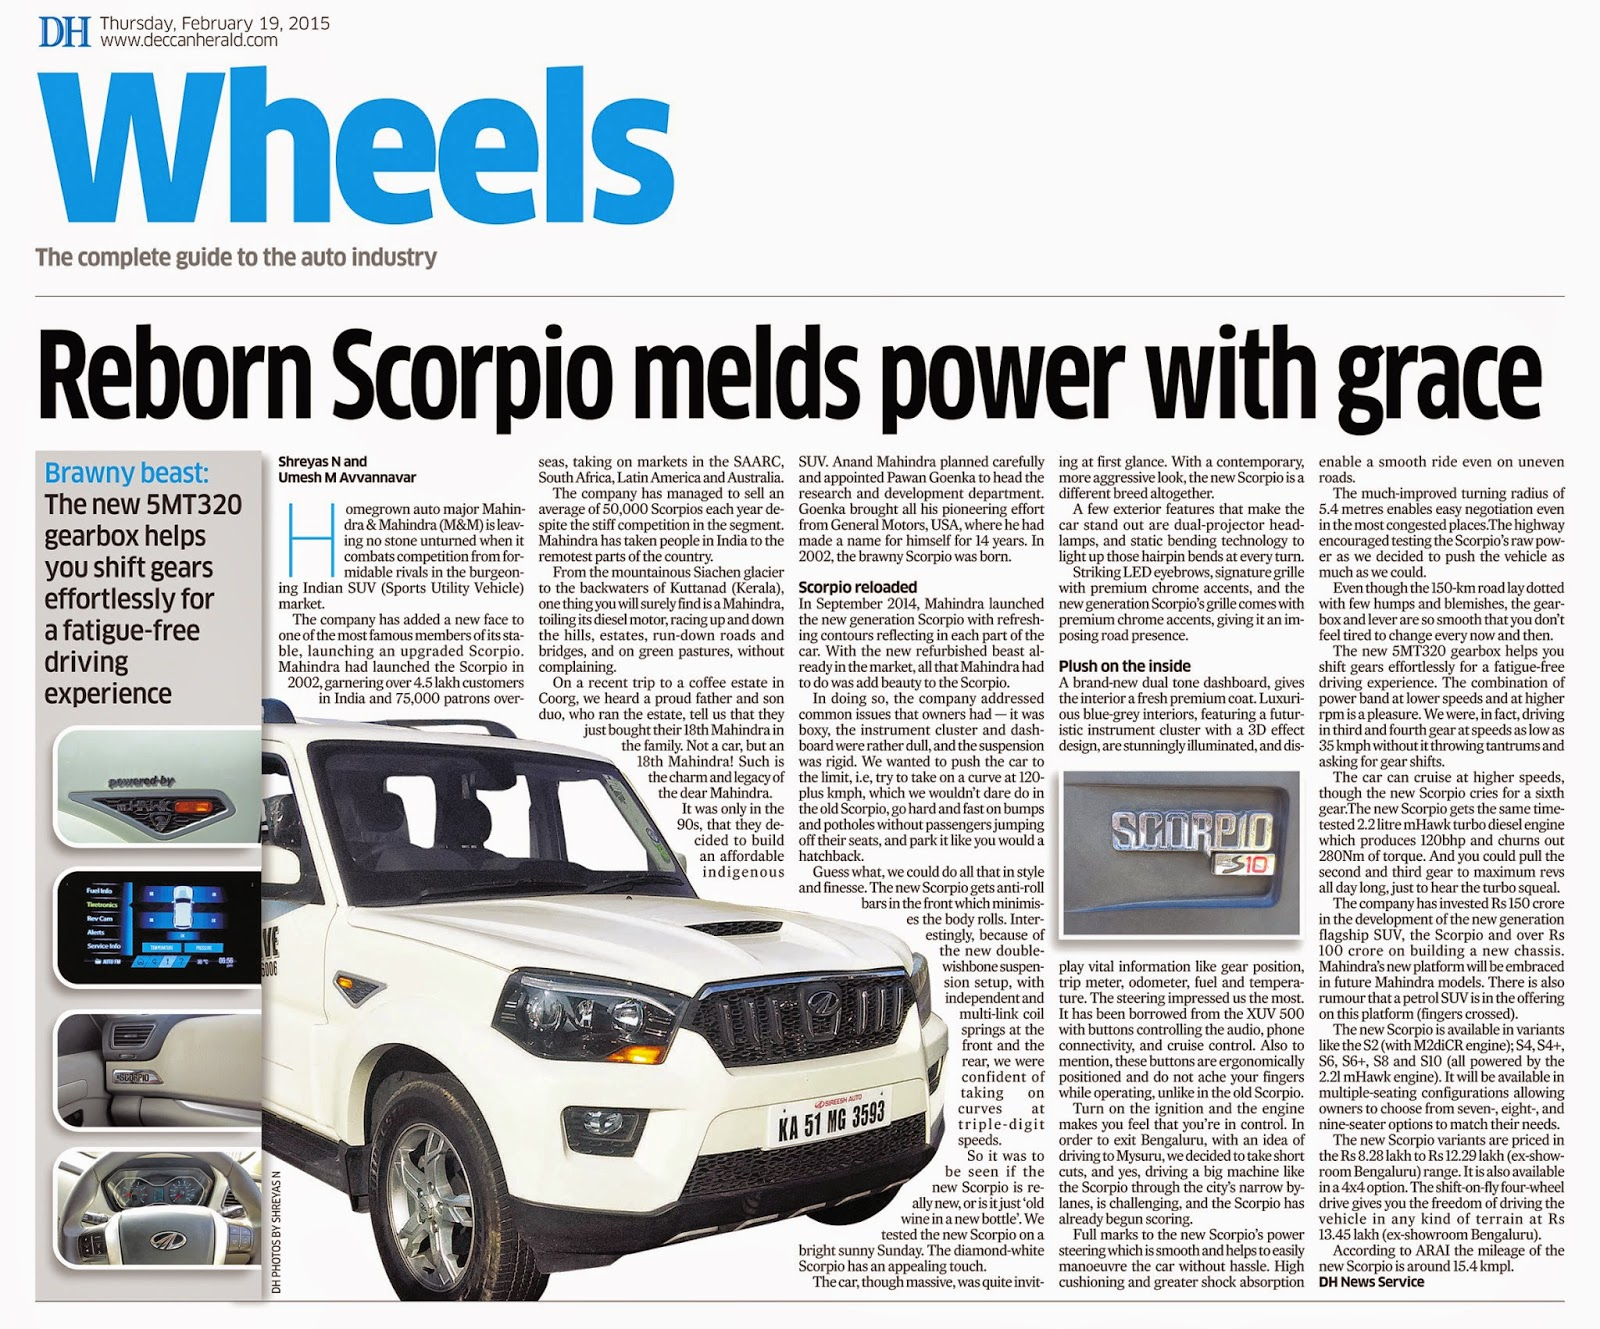 44f854c824a090 ... you the freedom of driving the vehicle in any kind of terrain at Rs  13.45 lakh (ex-showroom Bengaluru). According to ARAI the mileage of the  new Scorpio ...